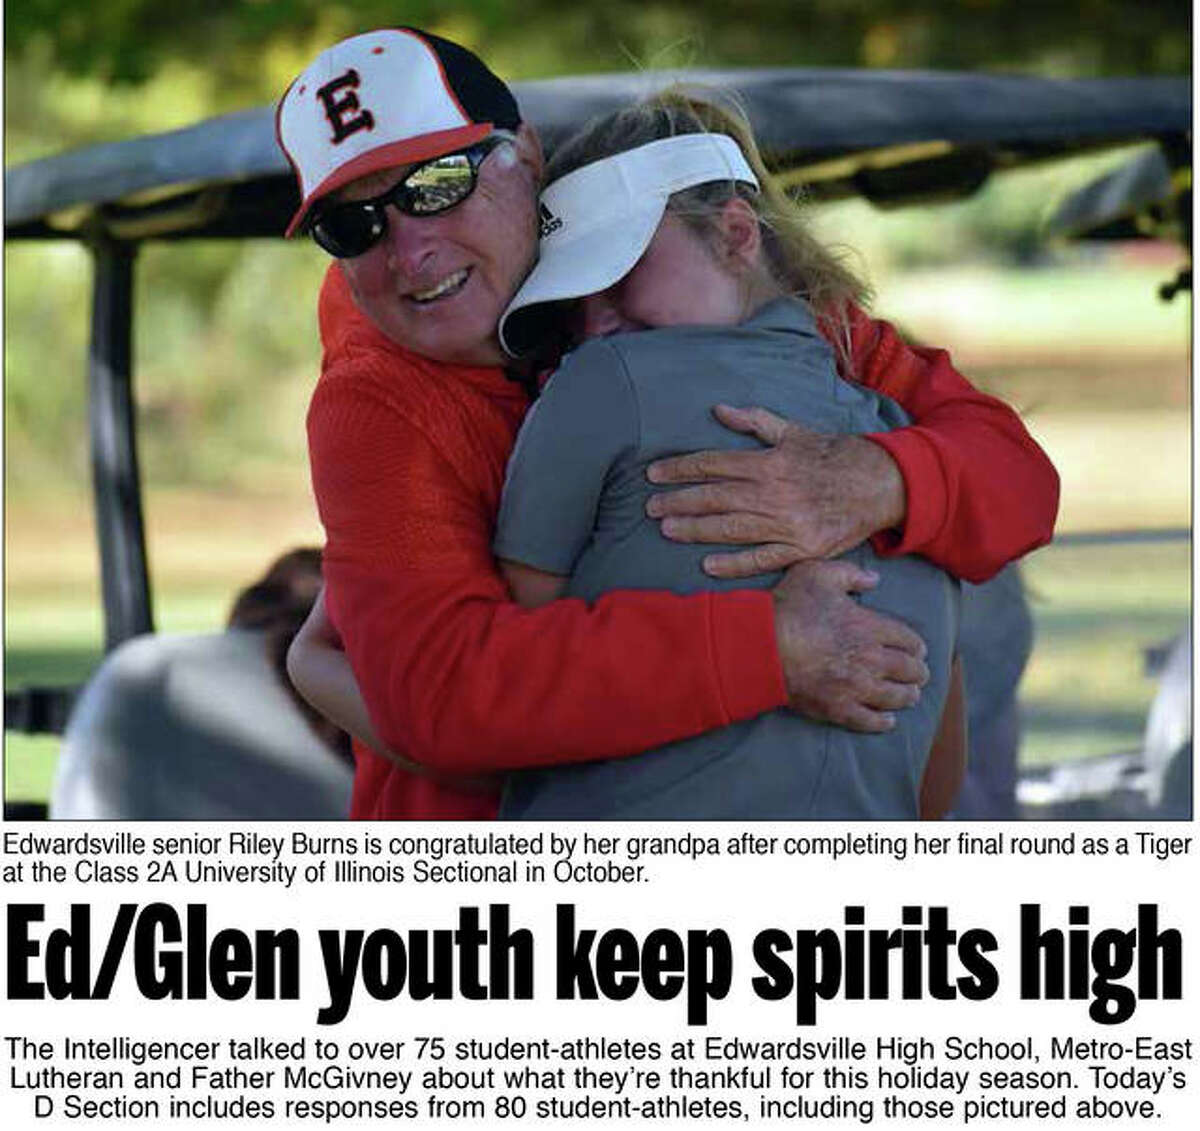 The Edwardsville Intelligencer reached out to student-athletes from Edwardsville High School, Metro-East Lutheran and Father McGivney to find out what they are thankful for this year.